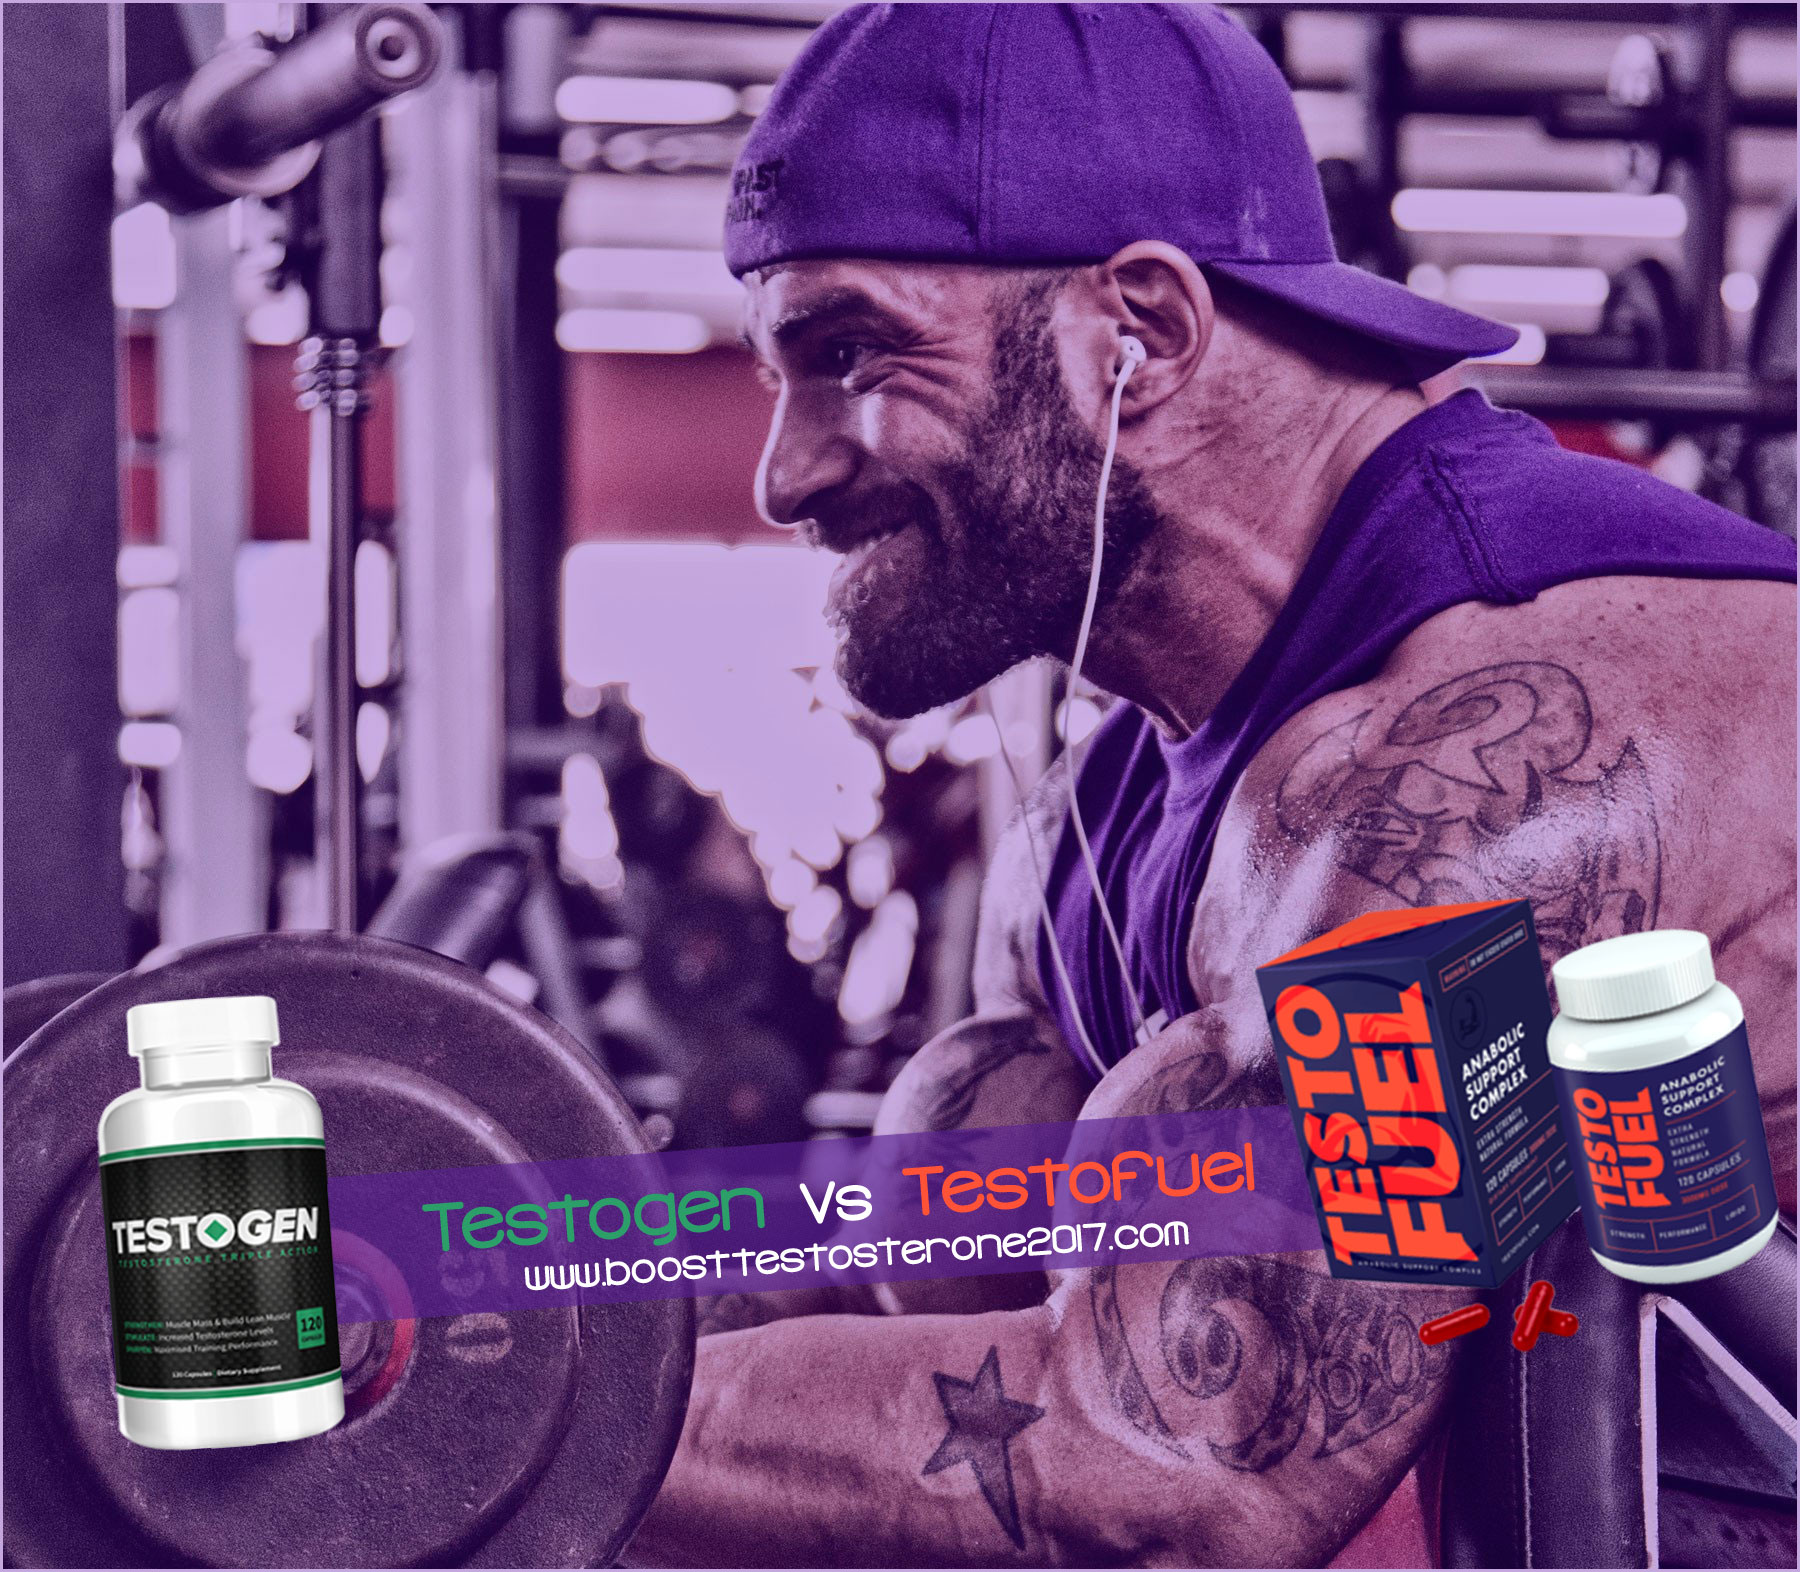 Testogen Vs Testofuel Testosterone booster supplement